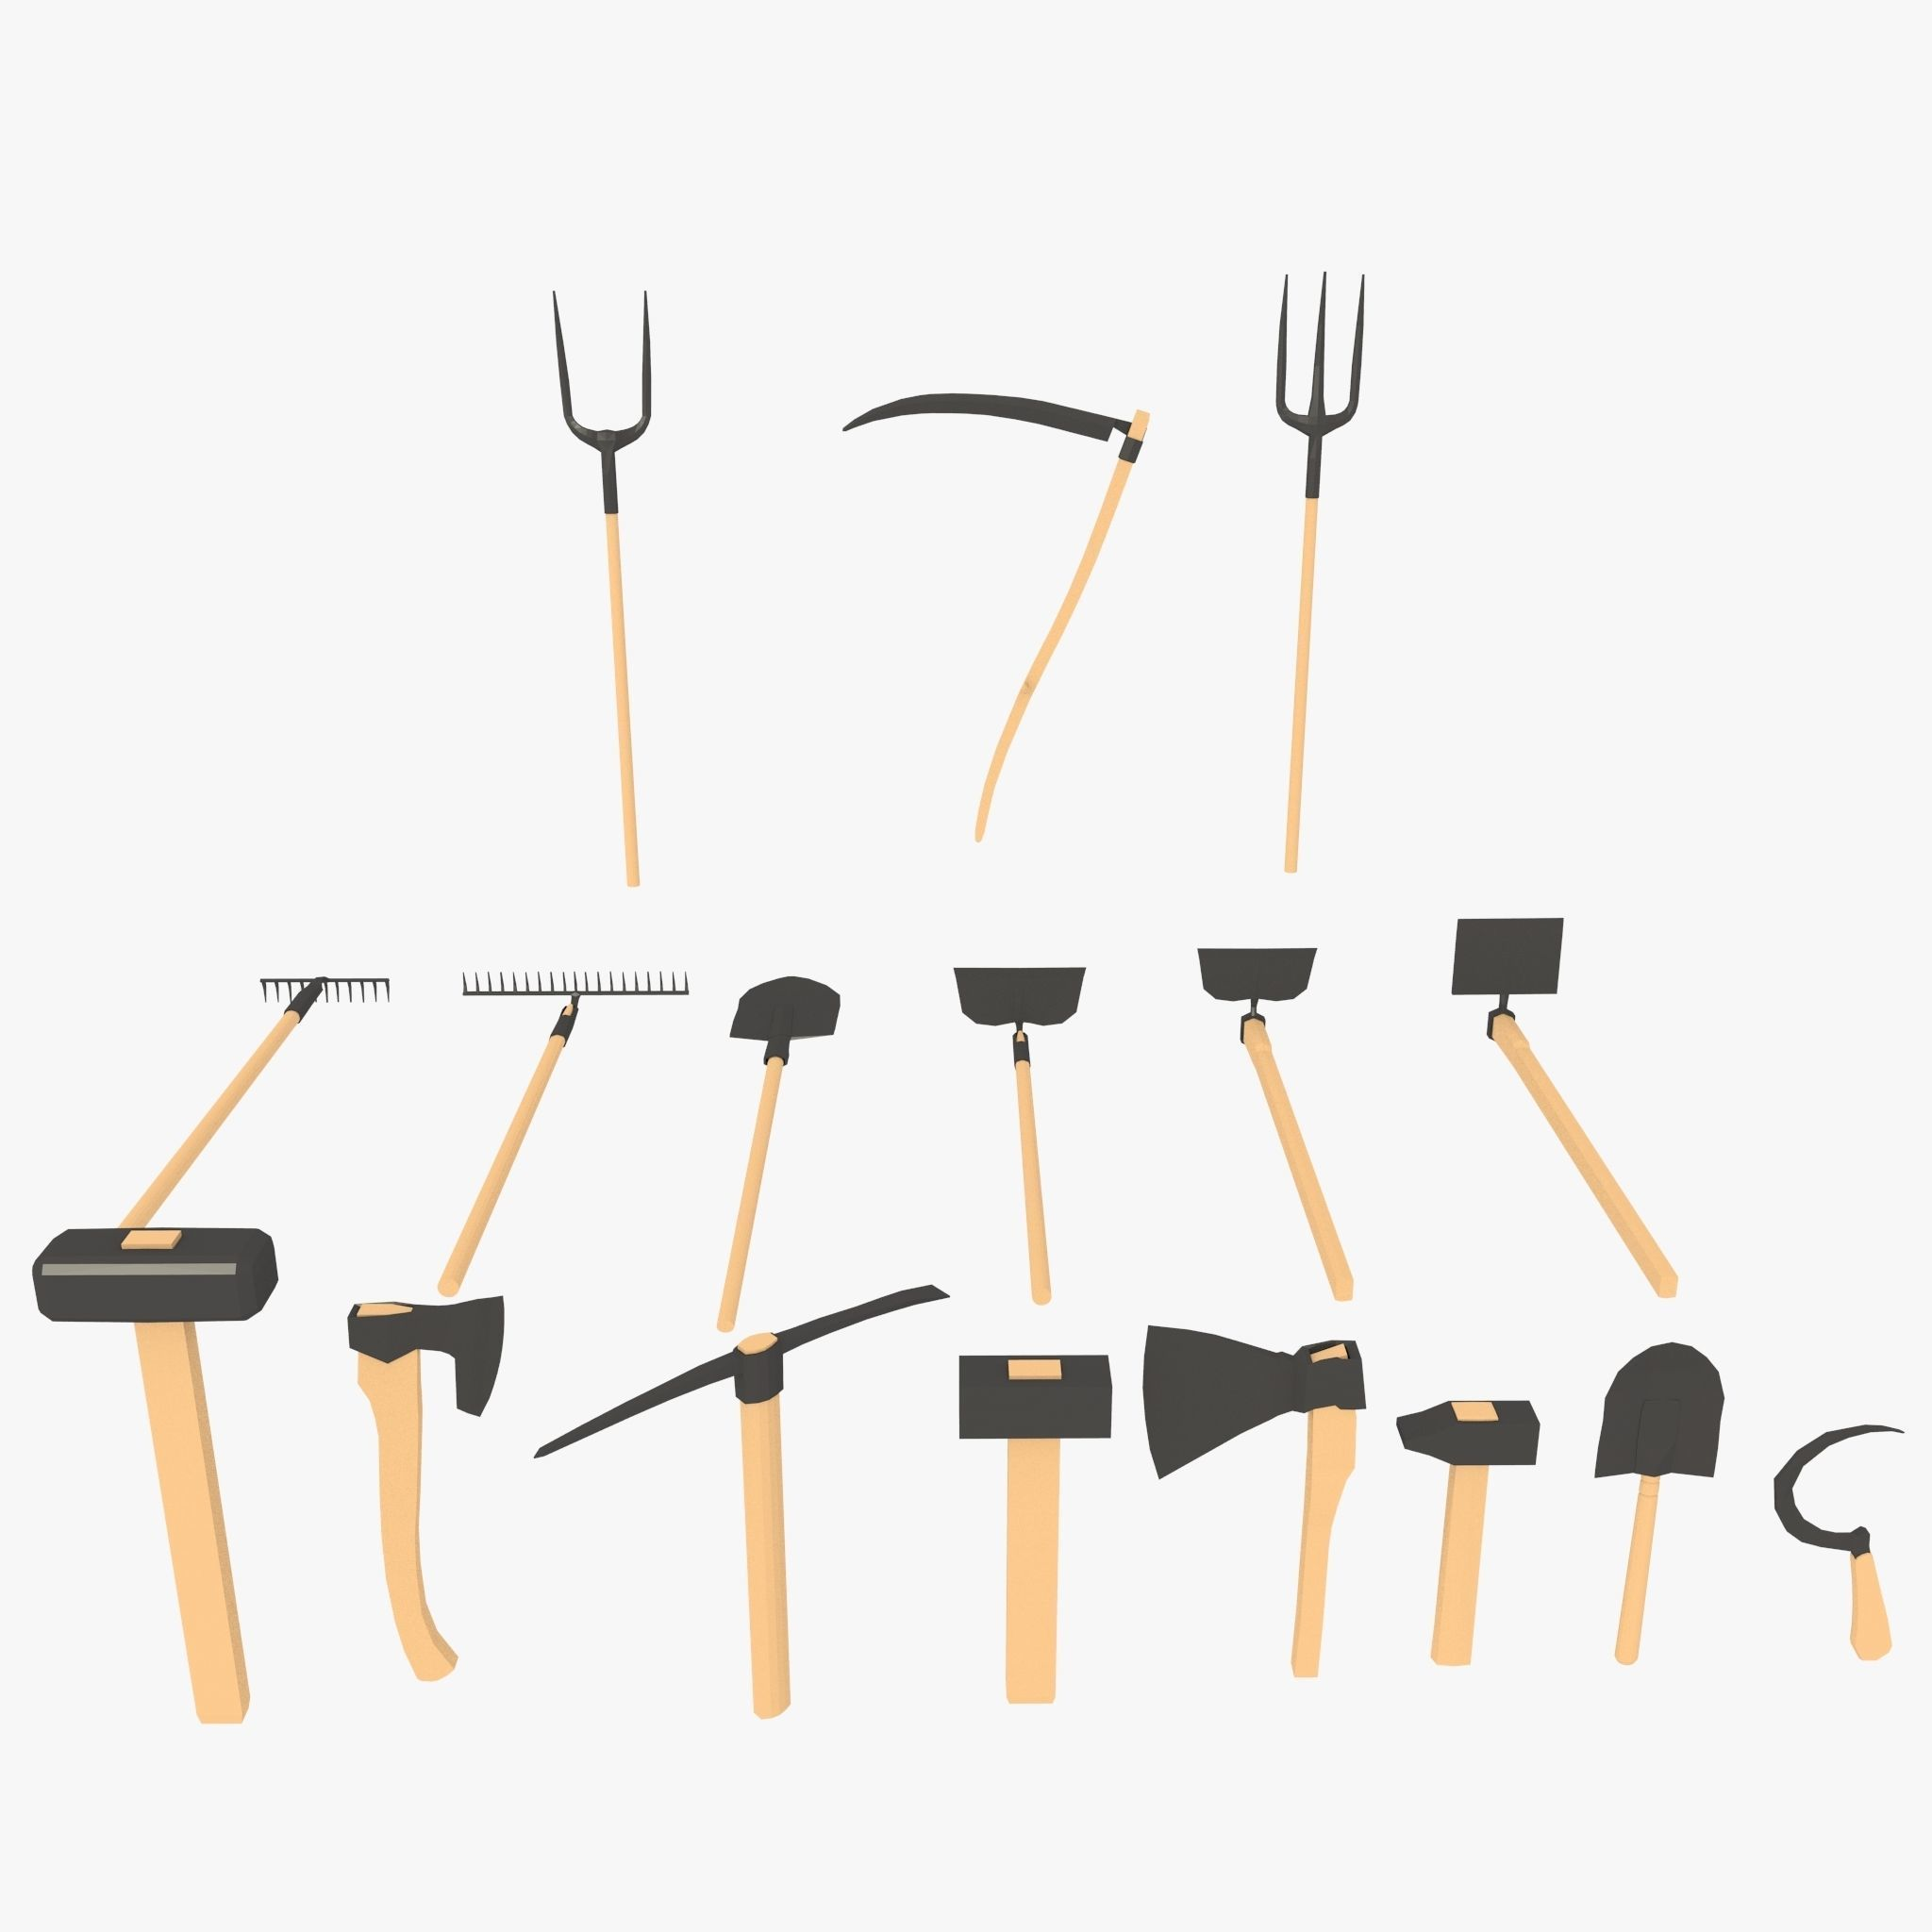 low poly tools pack